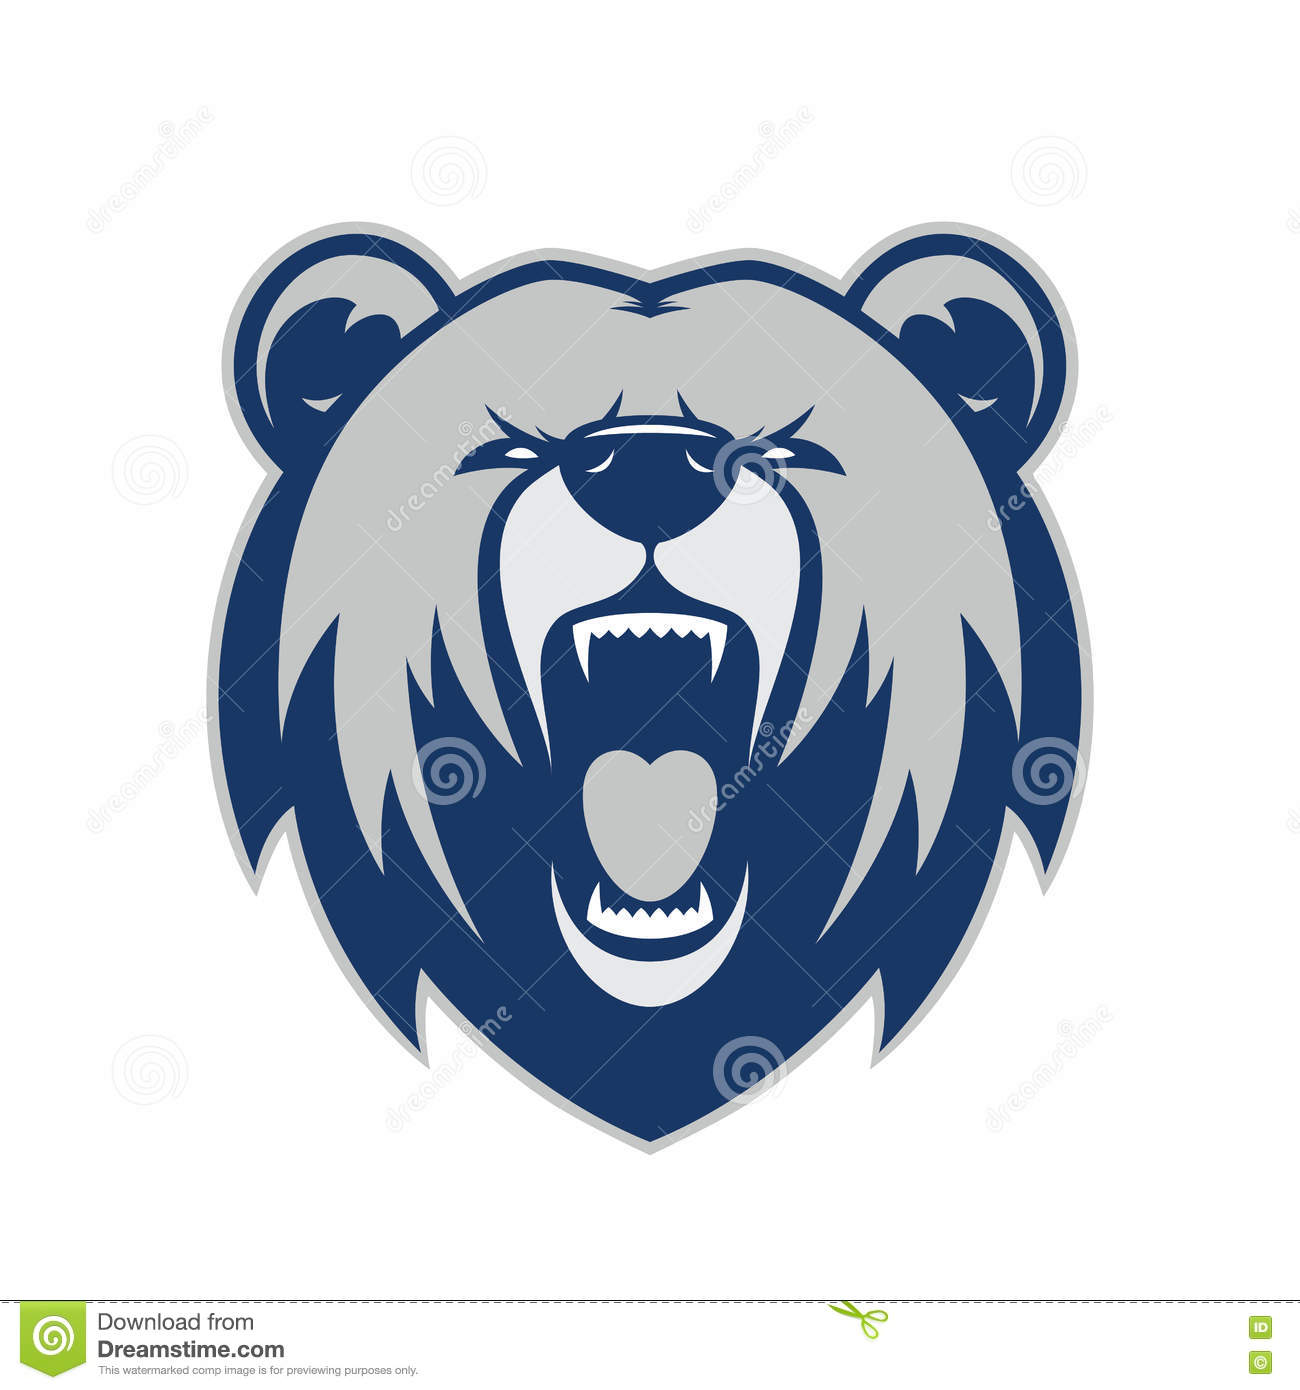 hight resolution of clipart picture of a bear head cartoon mascot logo character